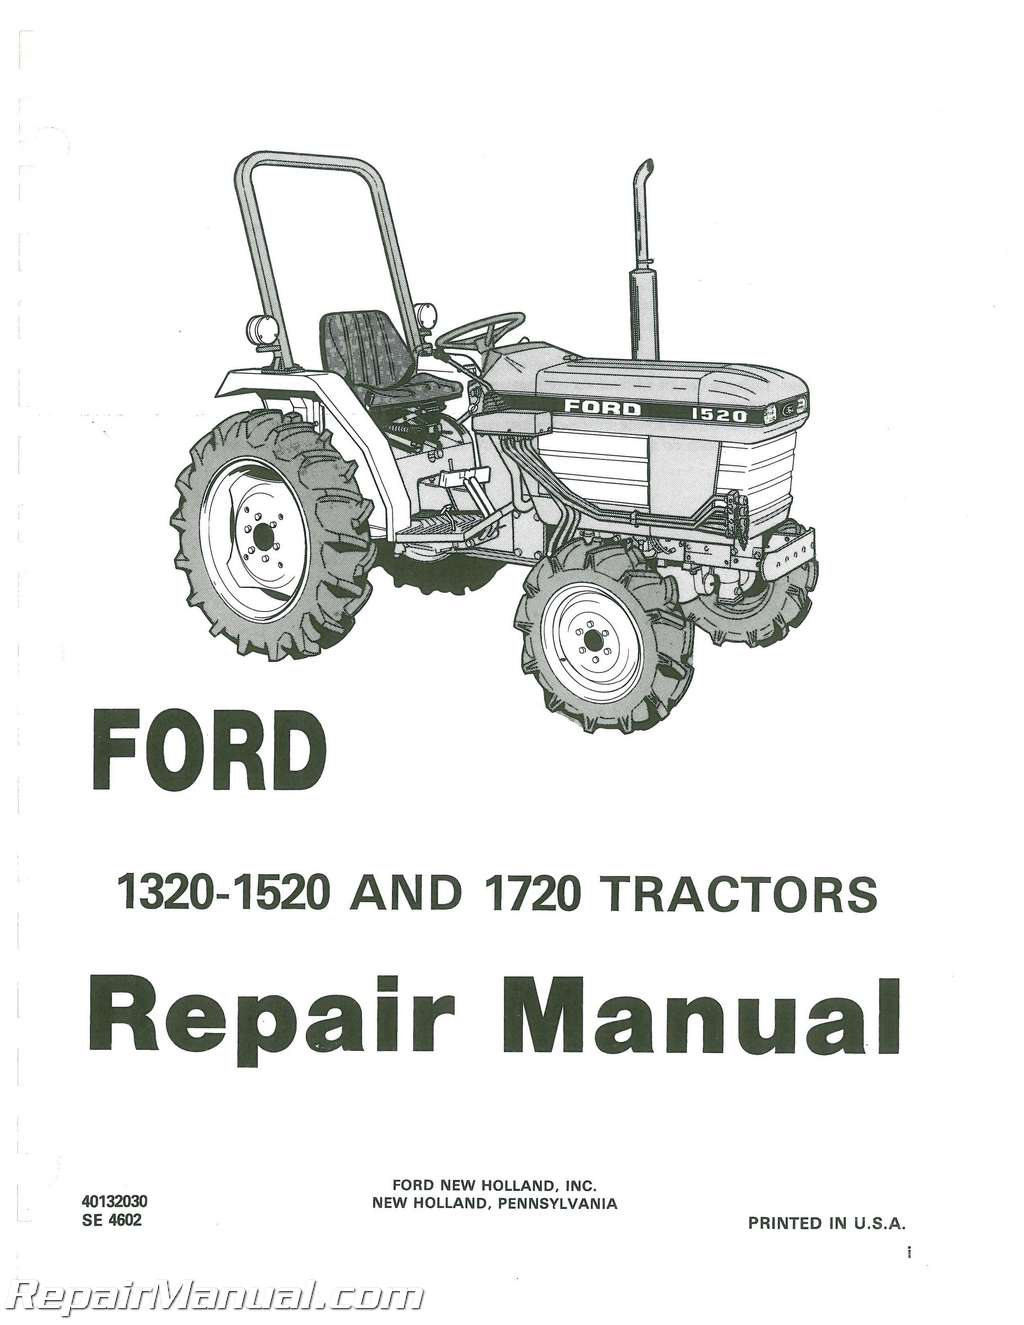 Ford And Tractor Repair Manual